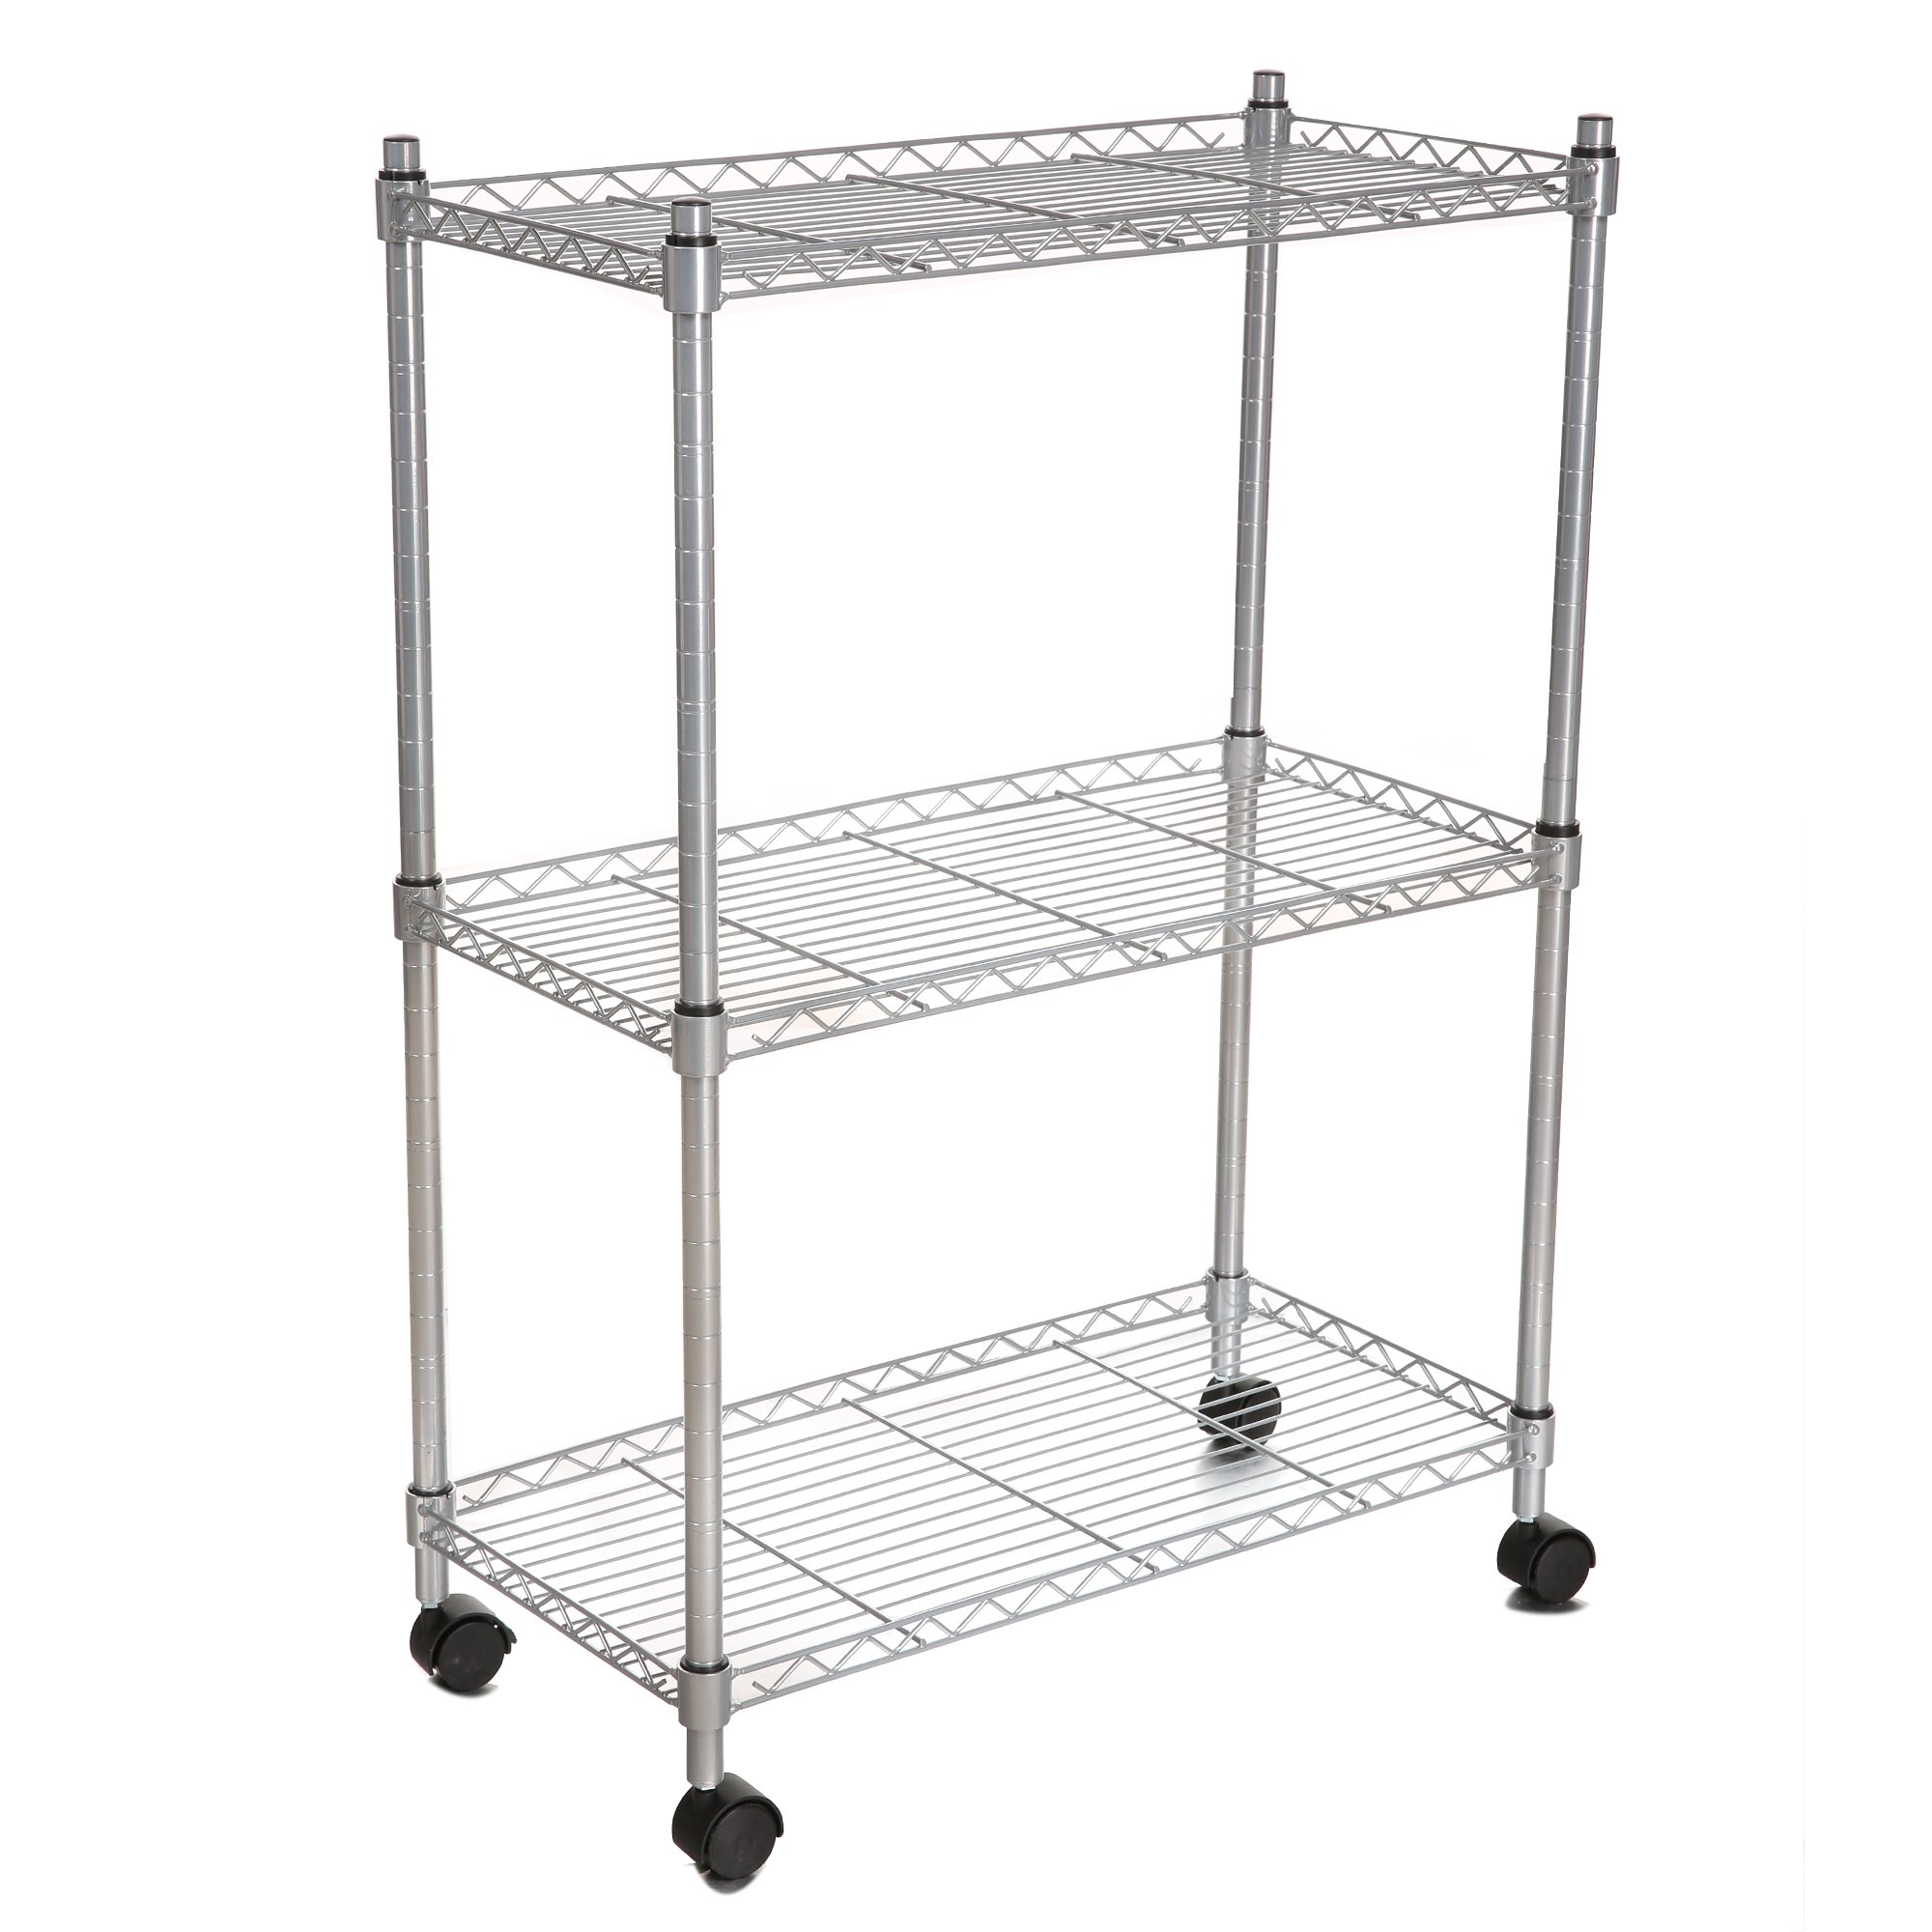 Anfan 3 Tier Wire Shelving Rack Heavy Duty Storage Shelf with Wheels for Kitchen, Garage and Office - 24 by 12 by 34Inch (Silver, 3 Shelves)